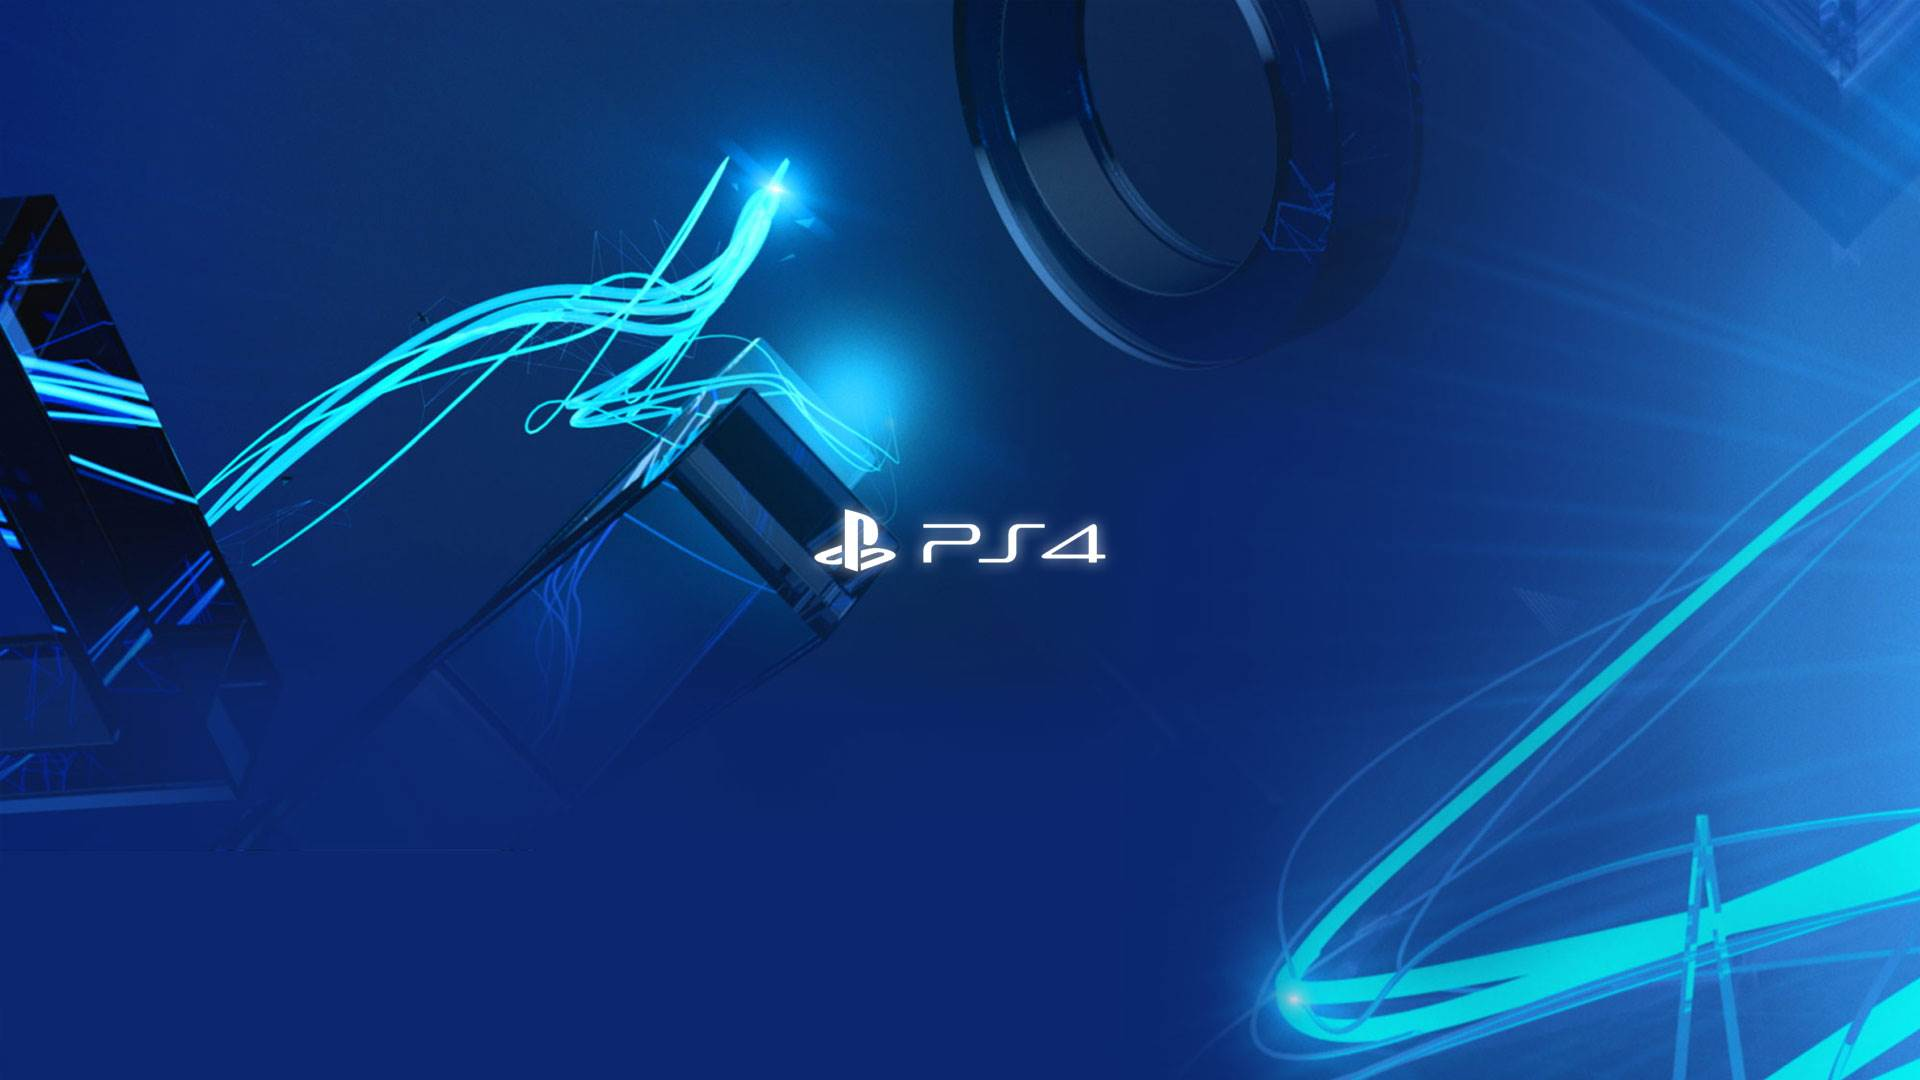 PS4 Wallpapers in 1080...